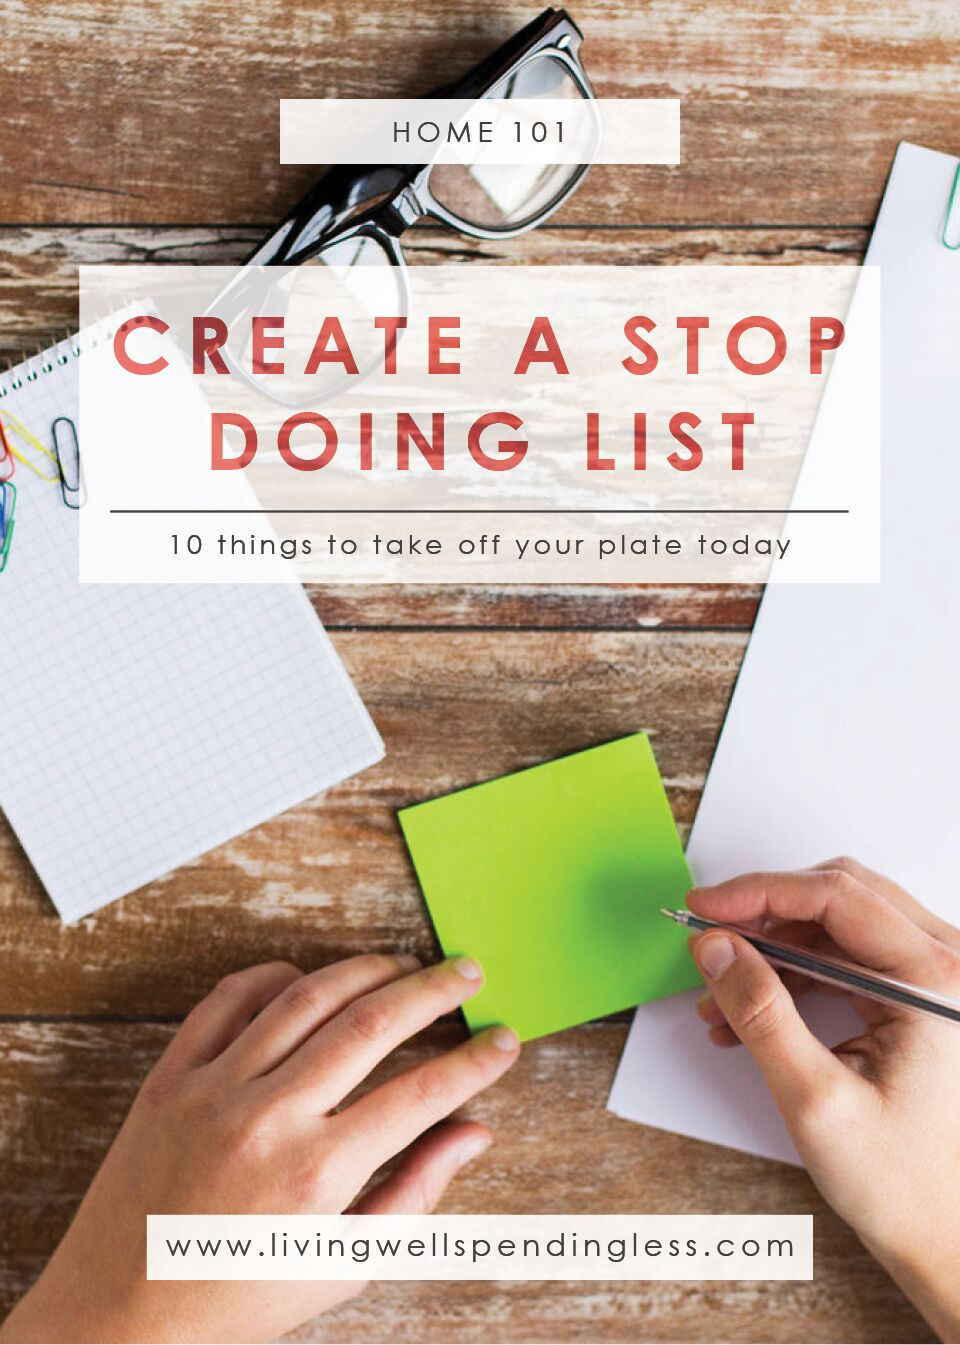 Create a Stop Doing List | Time Management | Home Management Management | Managing Priorities